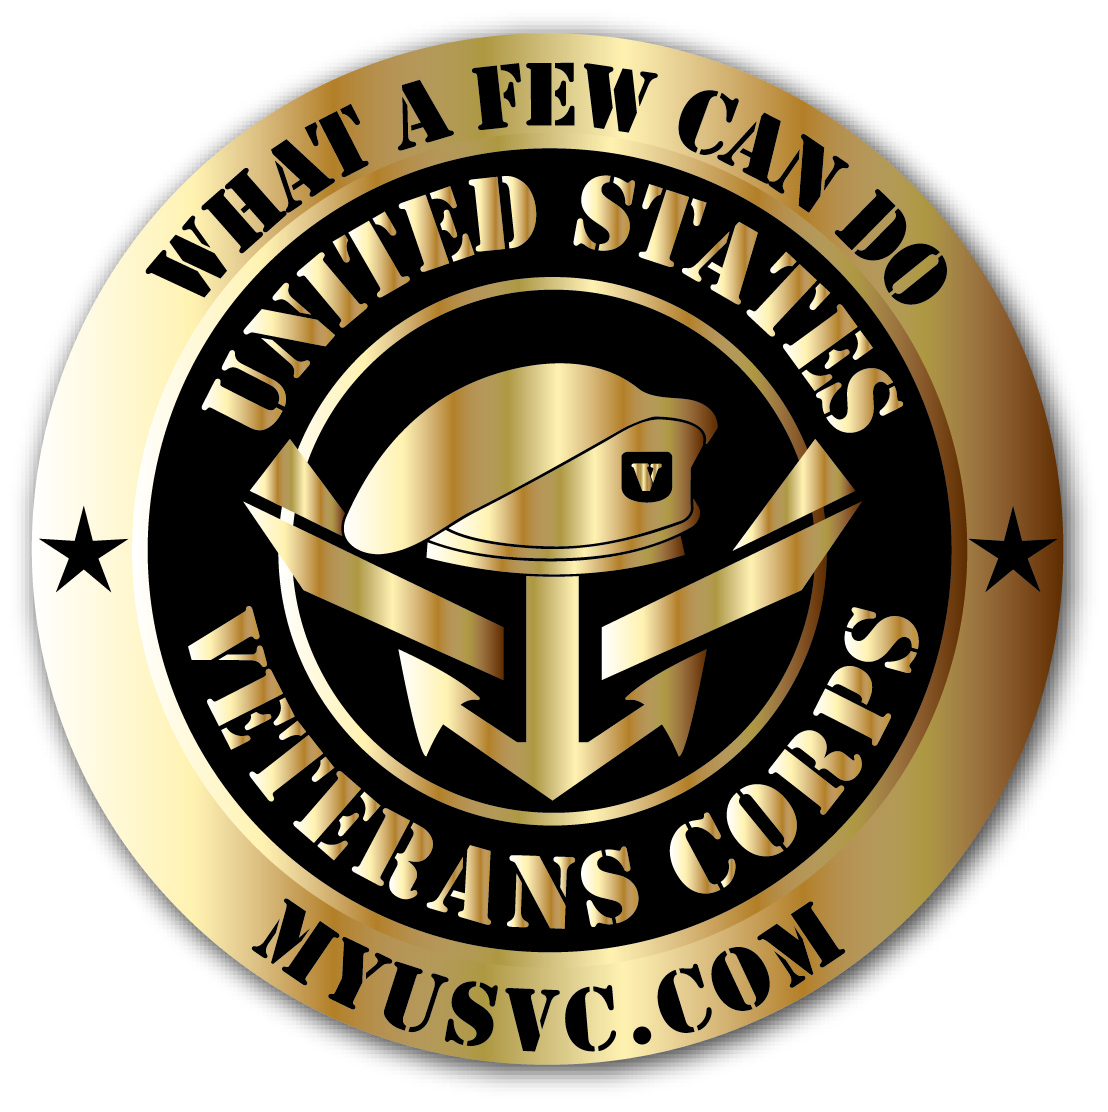 United States Veterans Corps